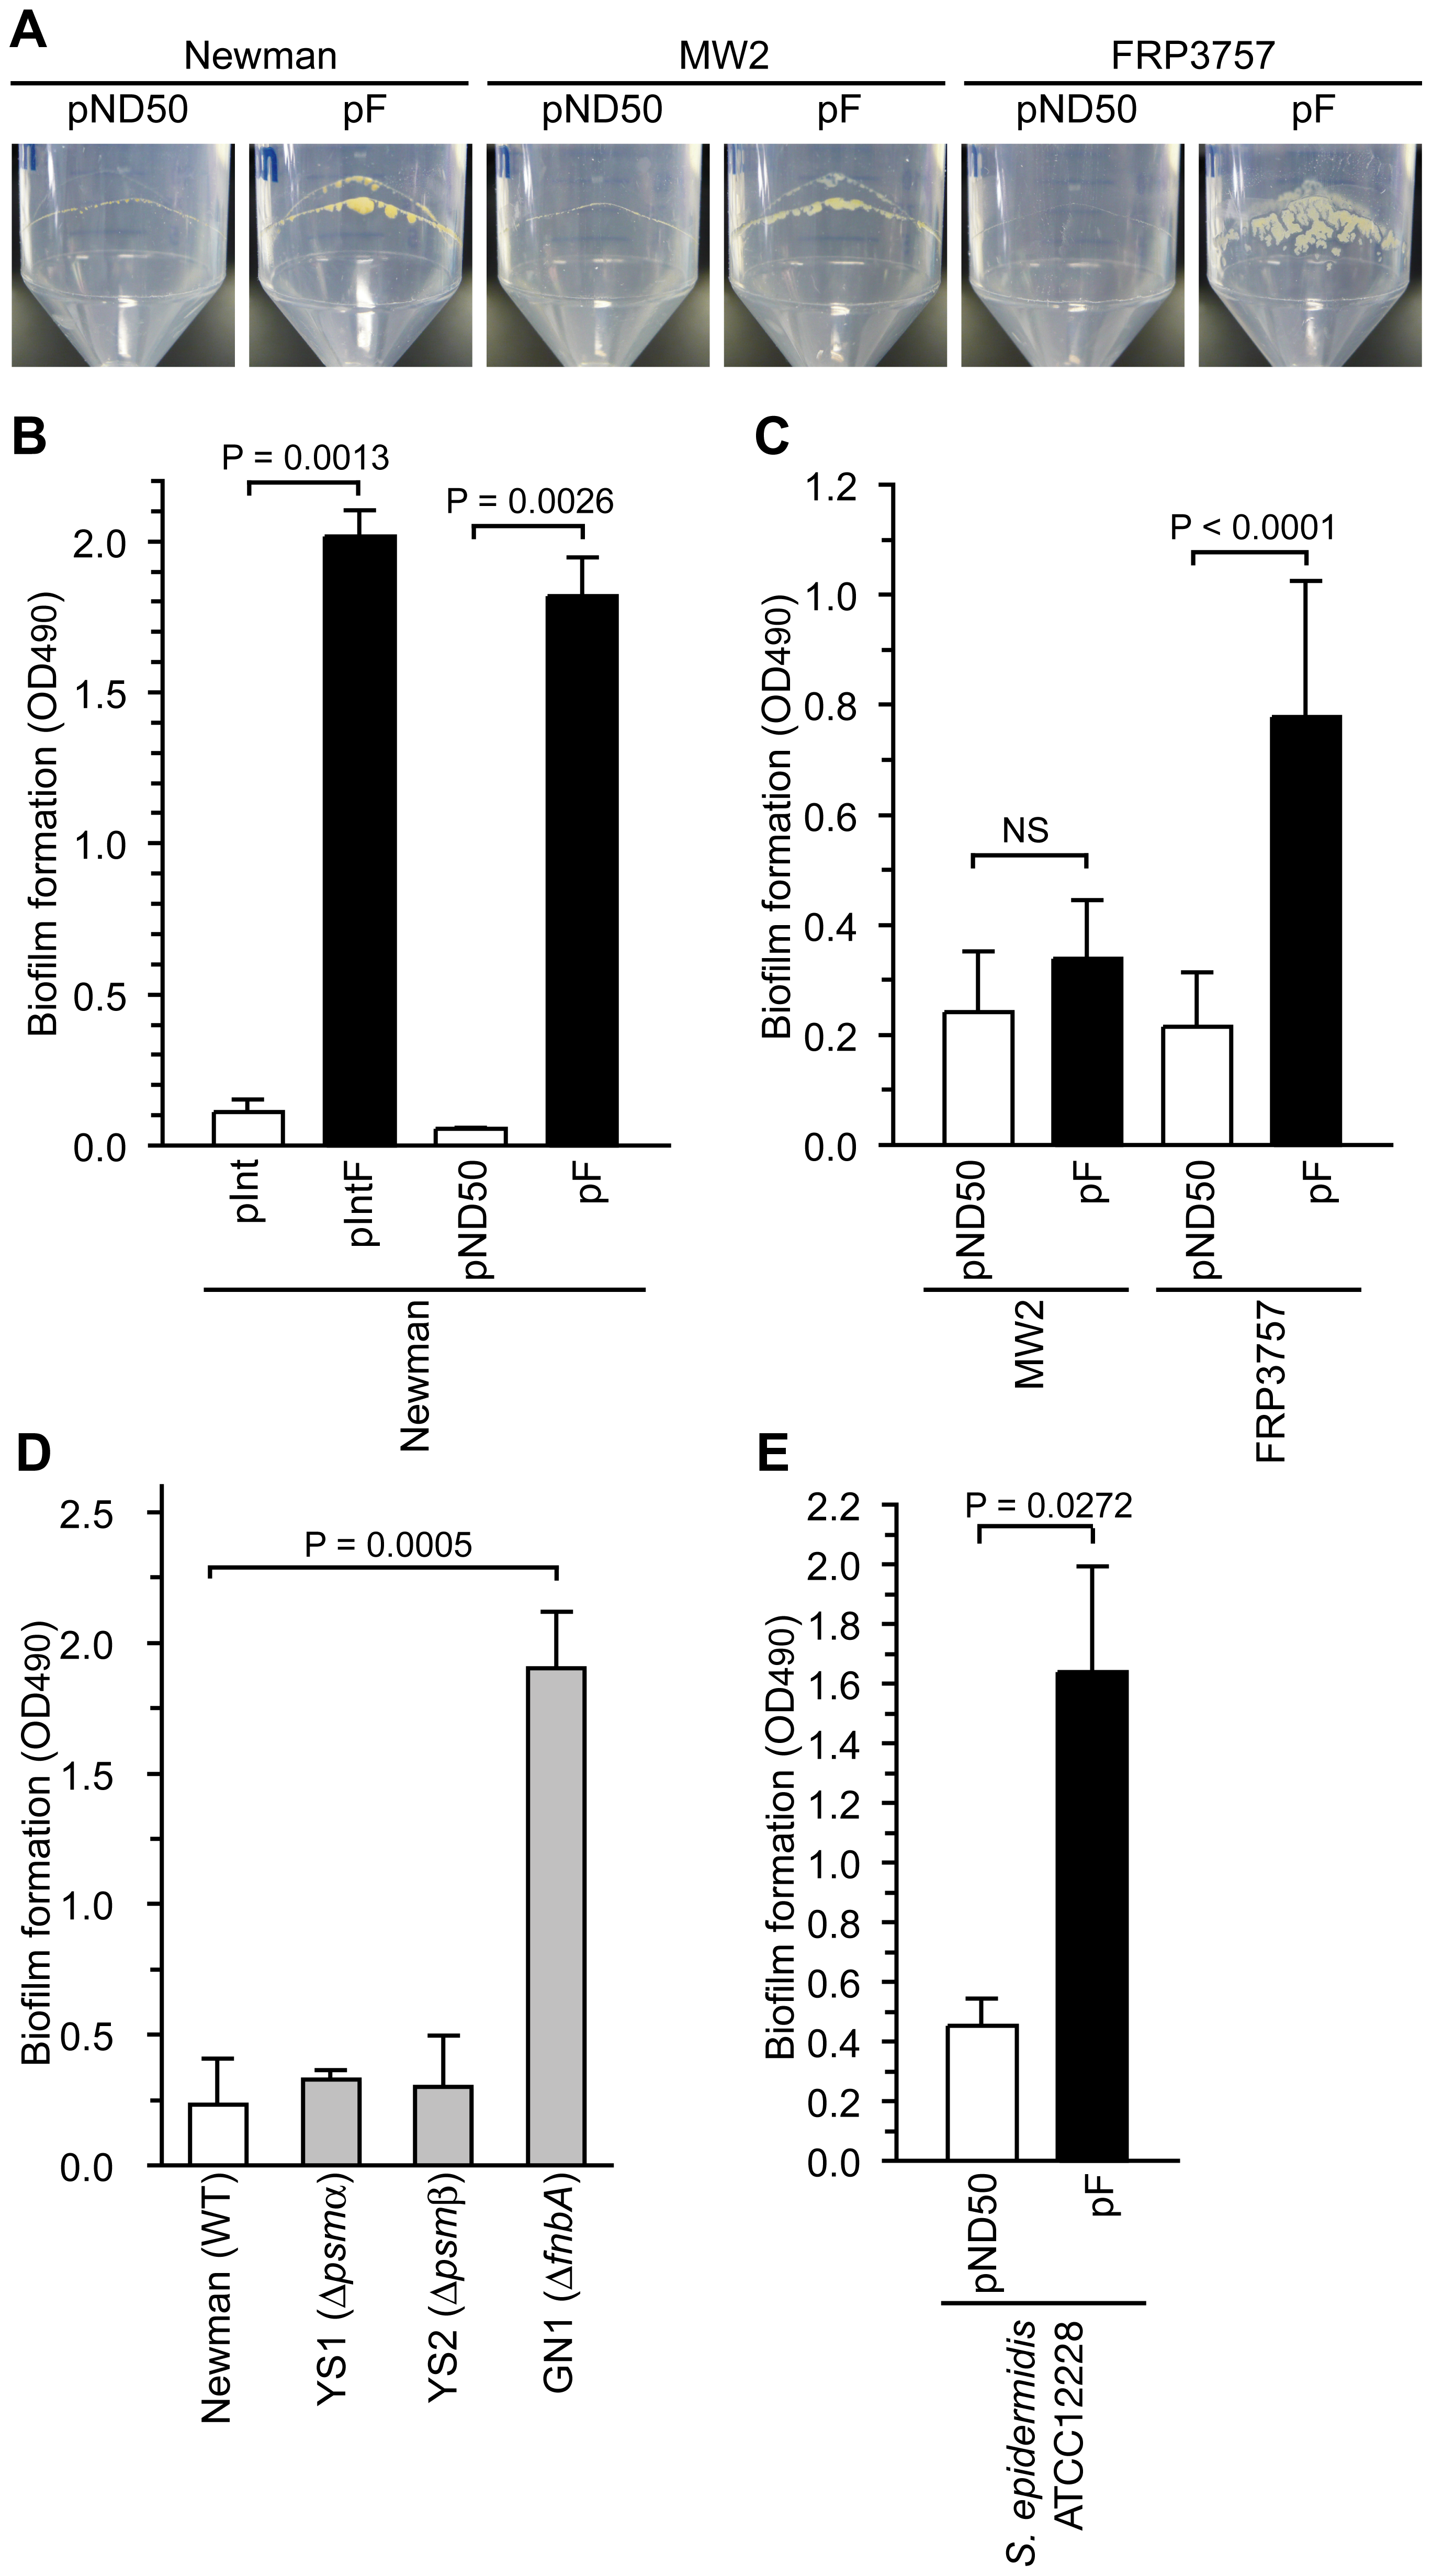 Introduction of the F region promotes biofilm formation.